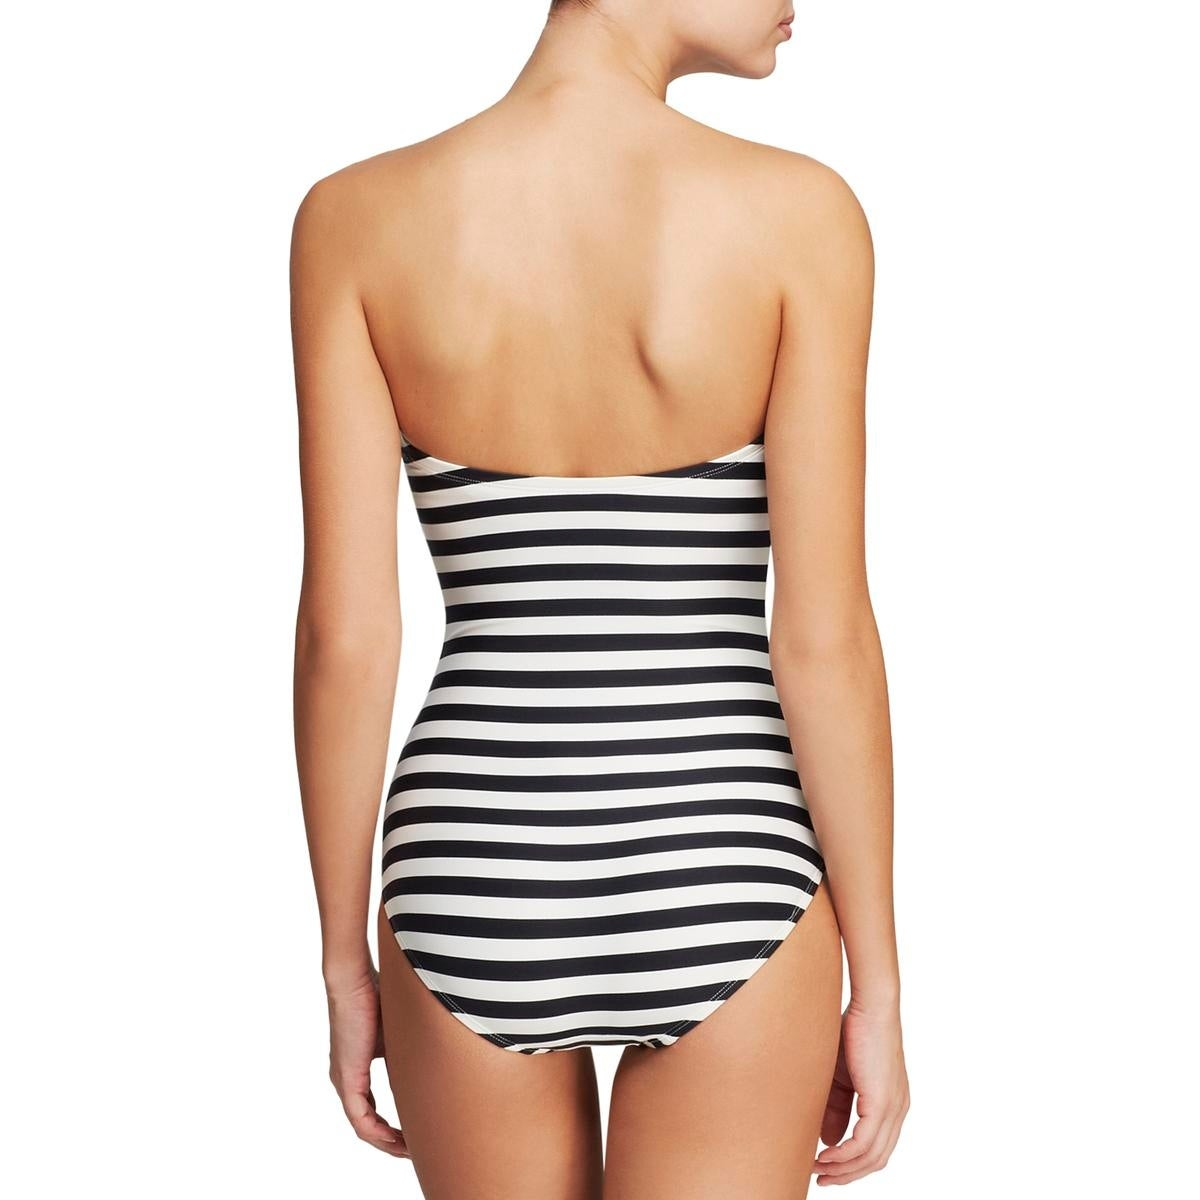 549ba68f291eb Shop Kate Spade Womens Georgia Beach Bandeau Striped One-Piece Swimsuit - L  - Free Shipping On Orders Over $45 - Overstock - 21956189